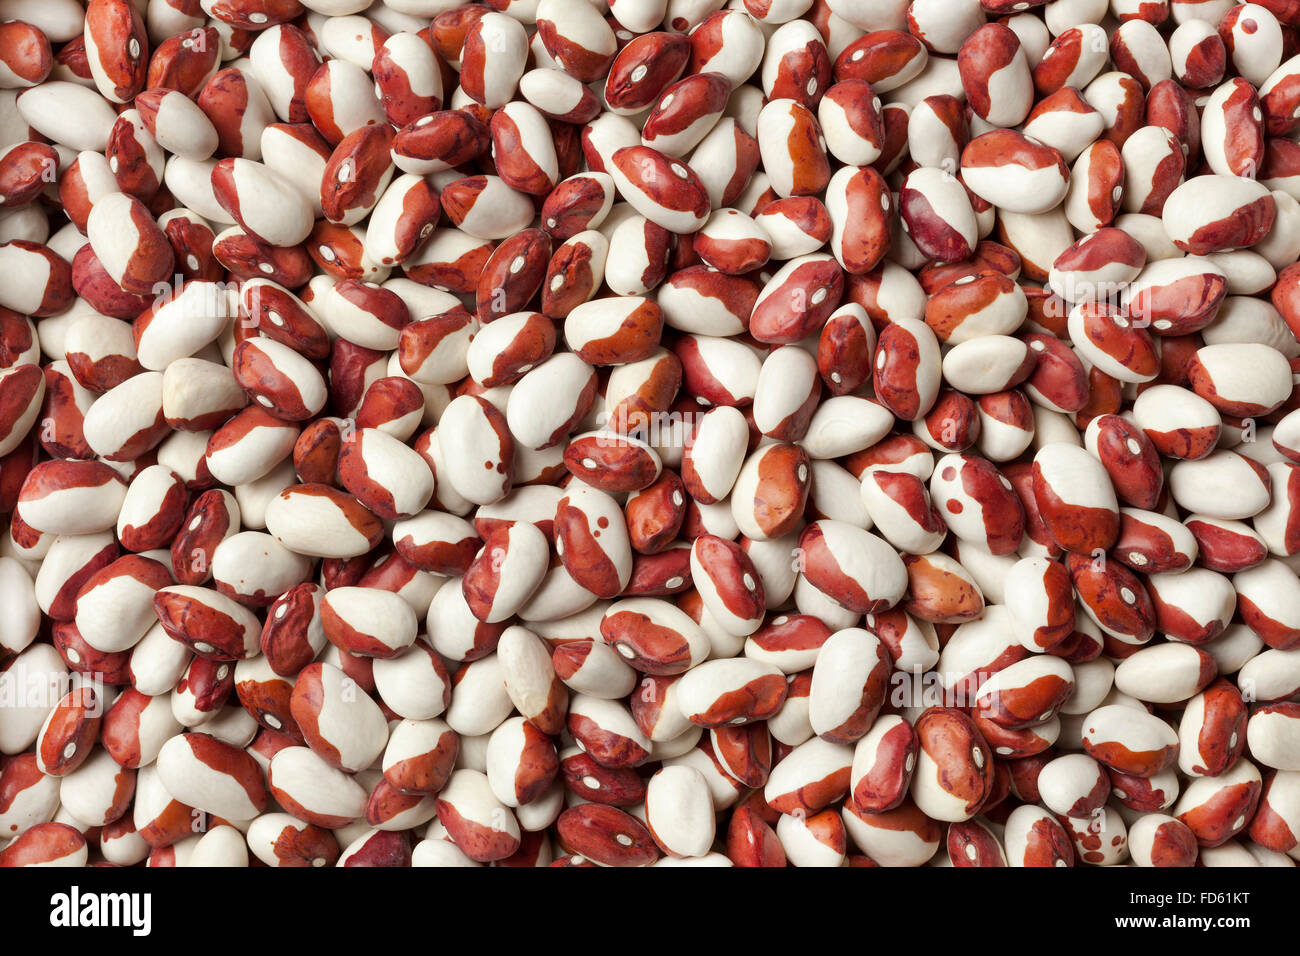 Dried Anasazi beans full frame - Stock Image